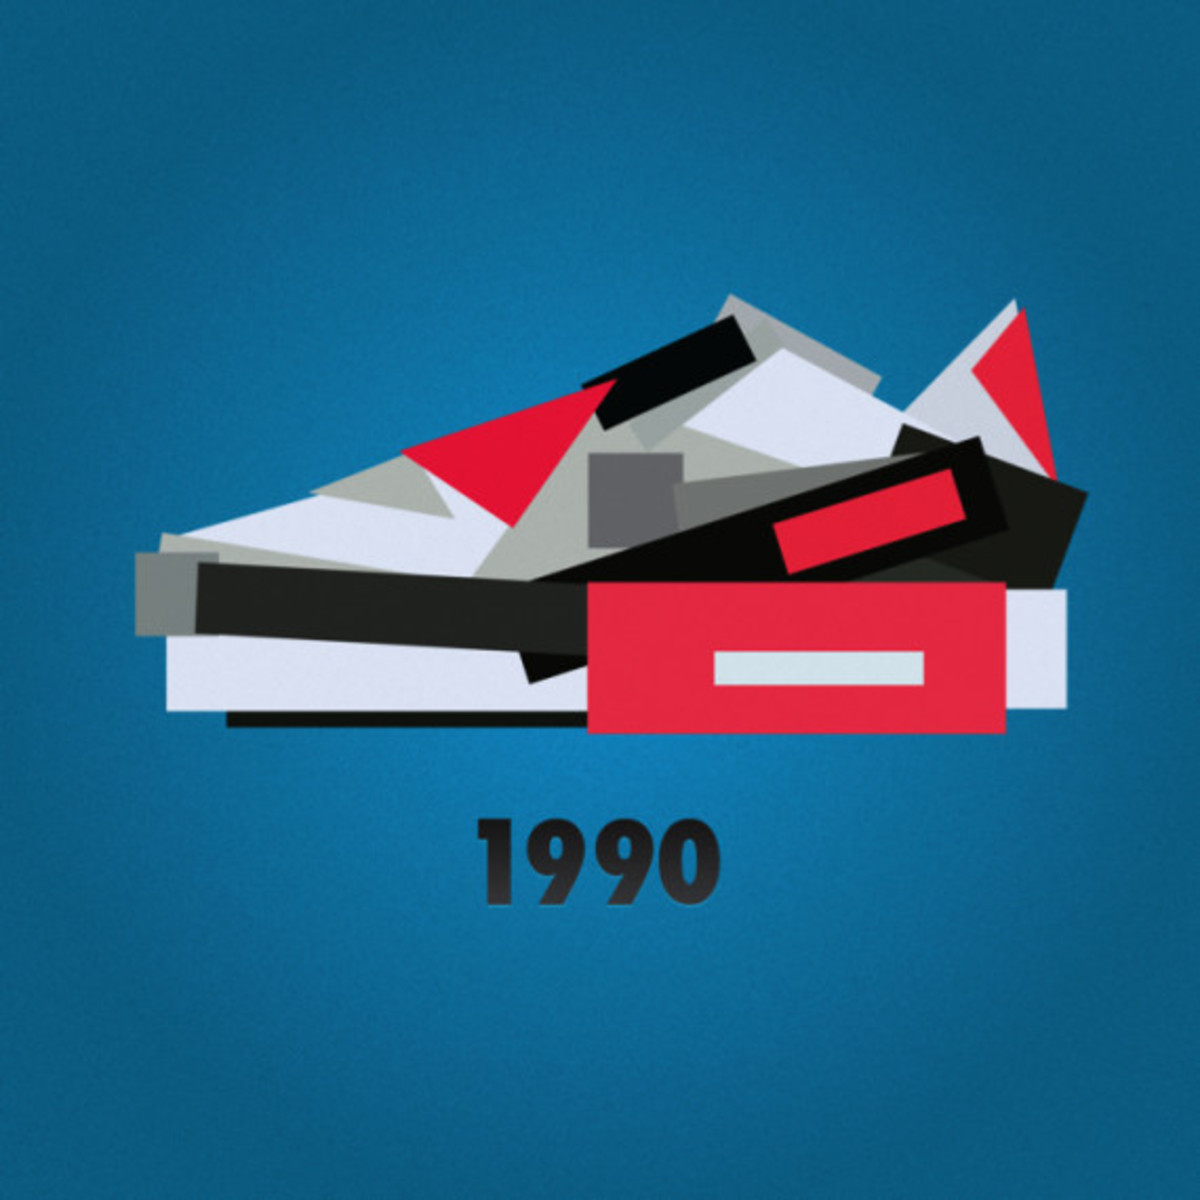 jack-stocker-minimal-sneaker-study-exhibition-04